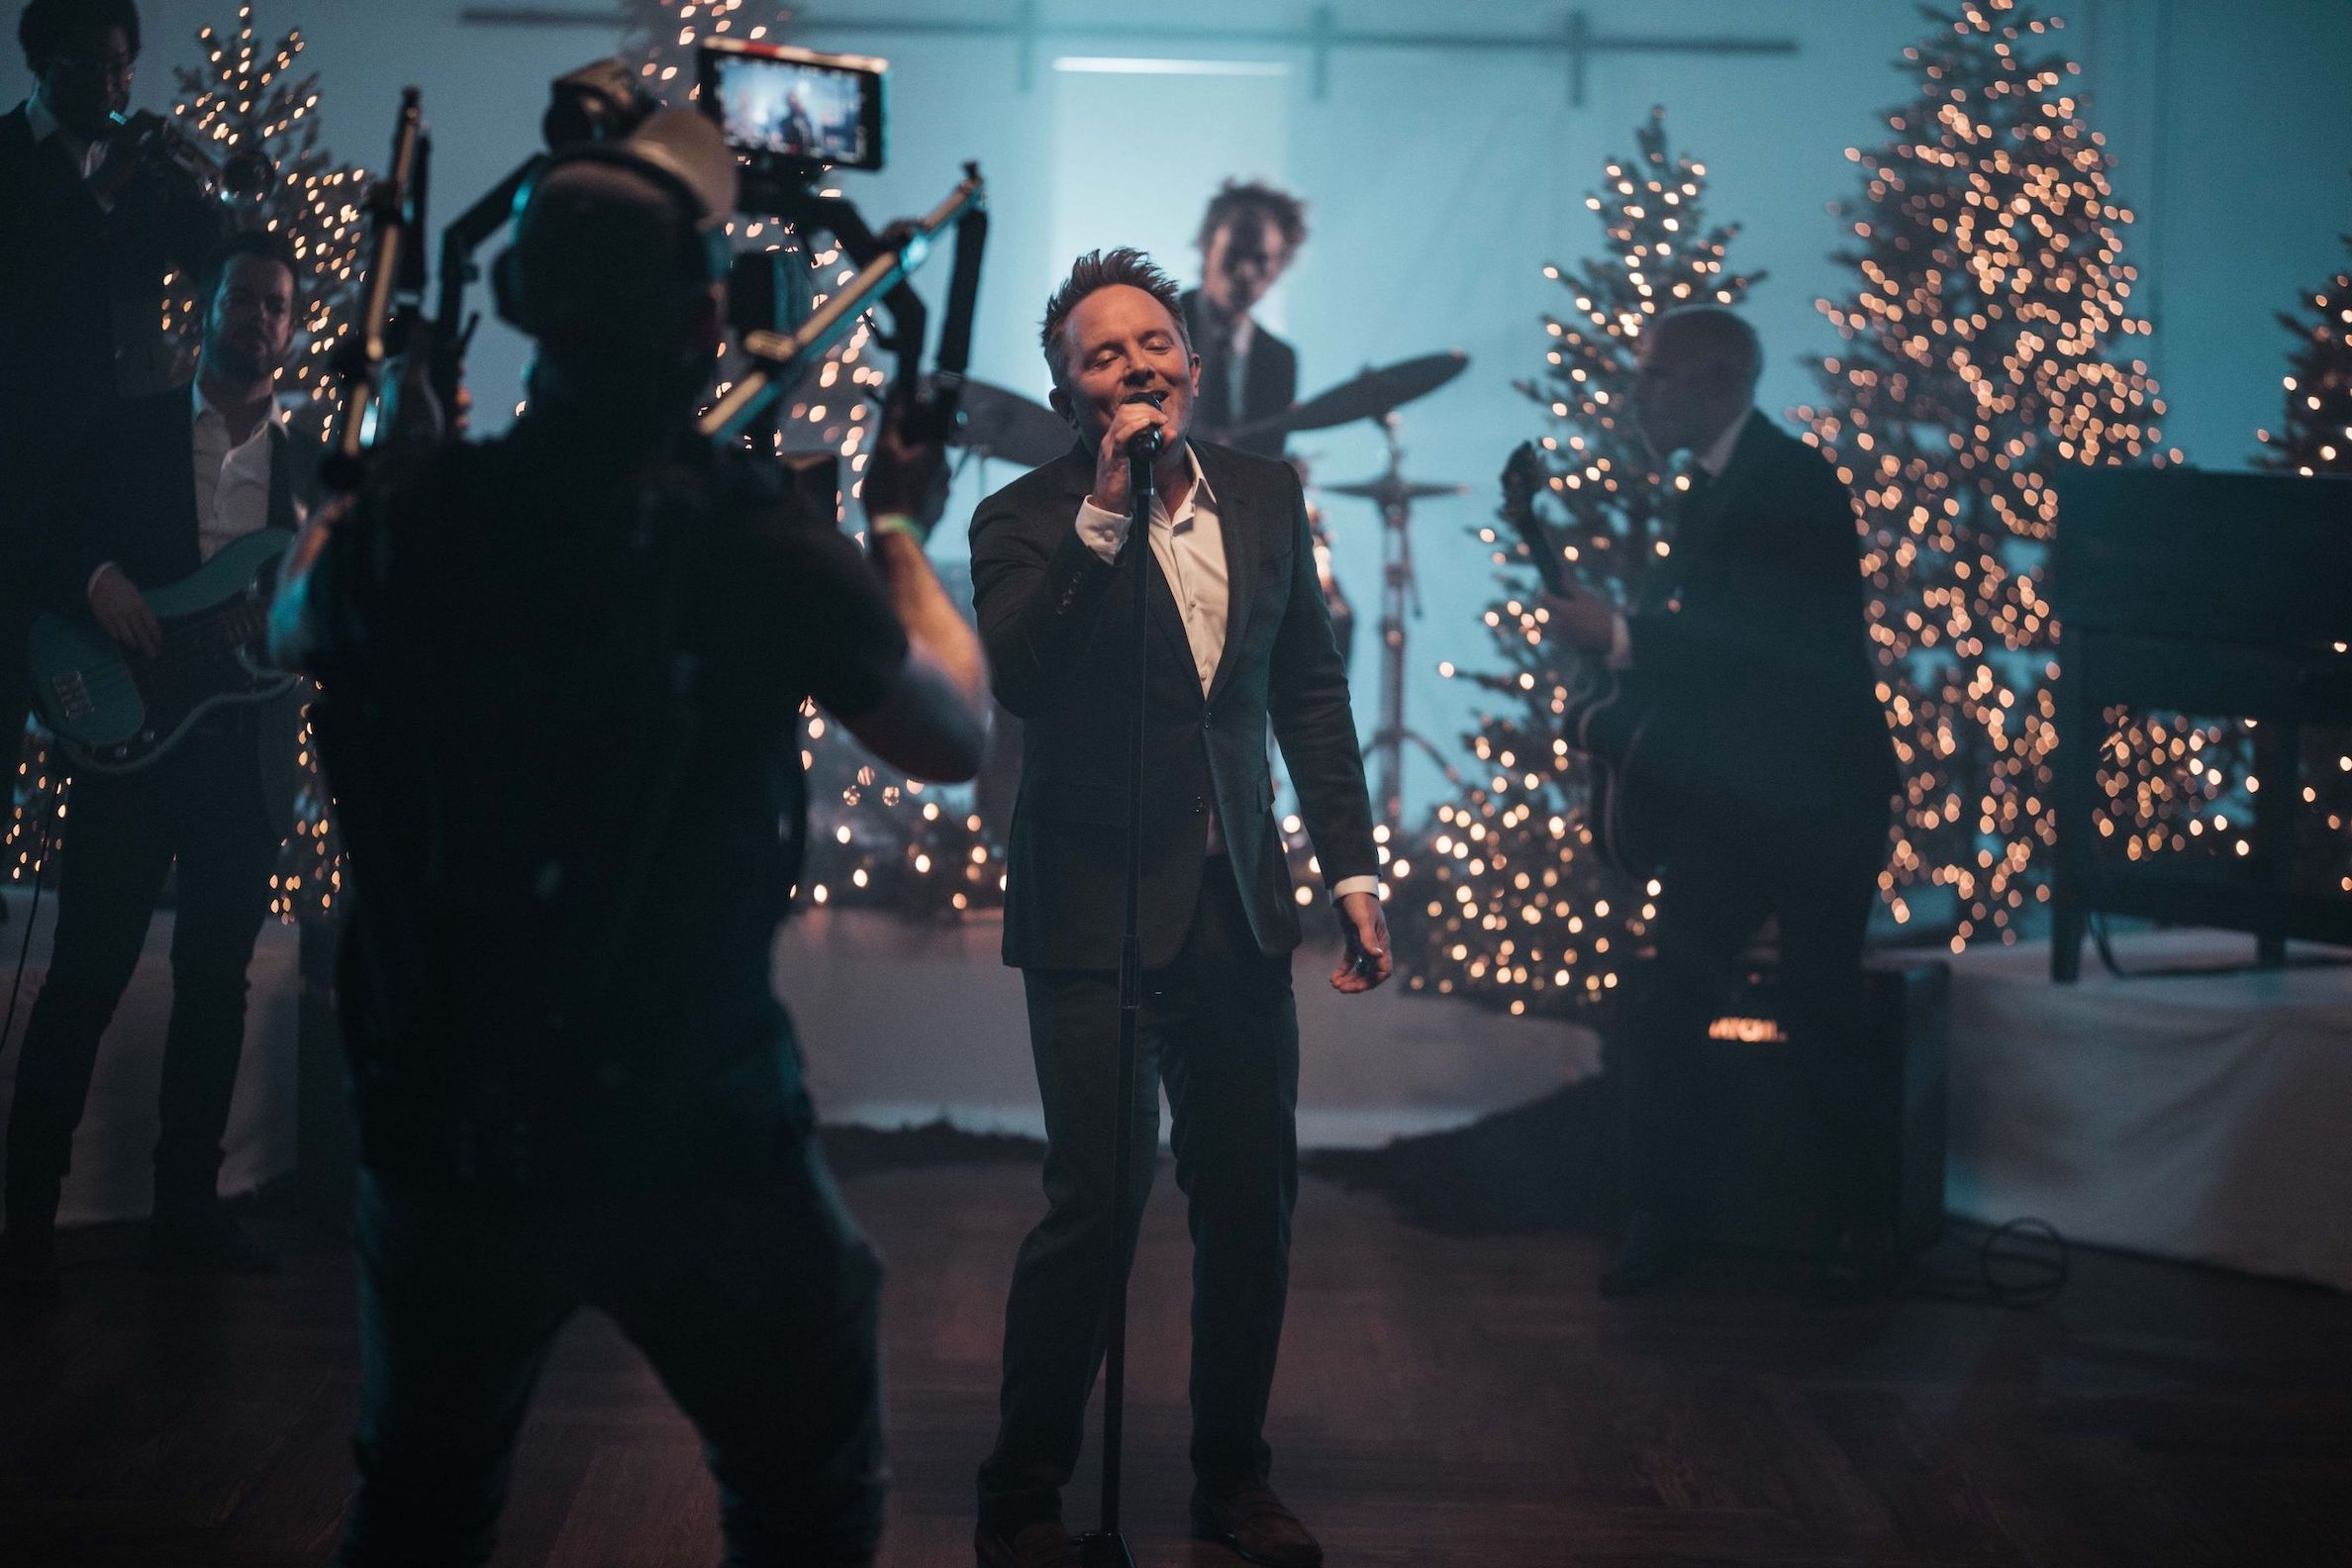 Chris Tomlin Christmas Tour 2021 Chris Tomlin Becomes First Christian Genre Artist To Exclusively Premiere Music Video On Facebook